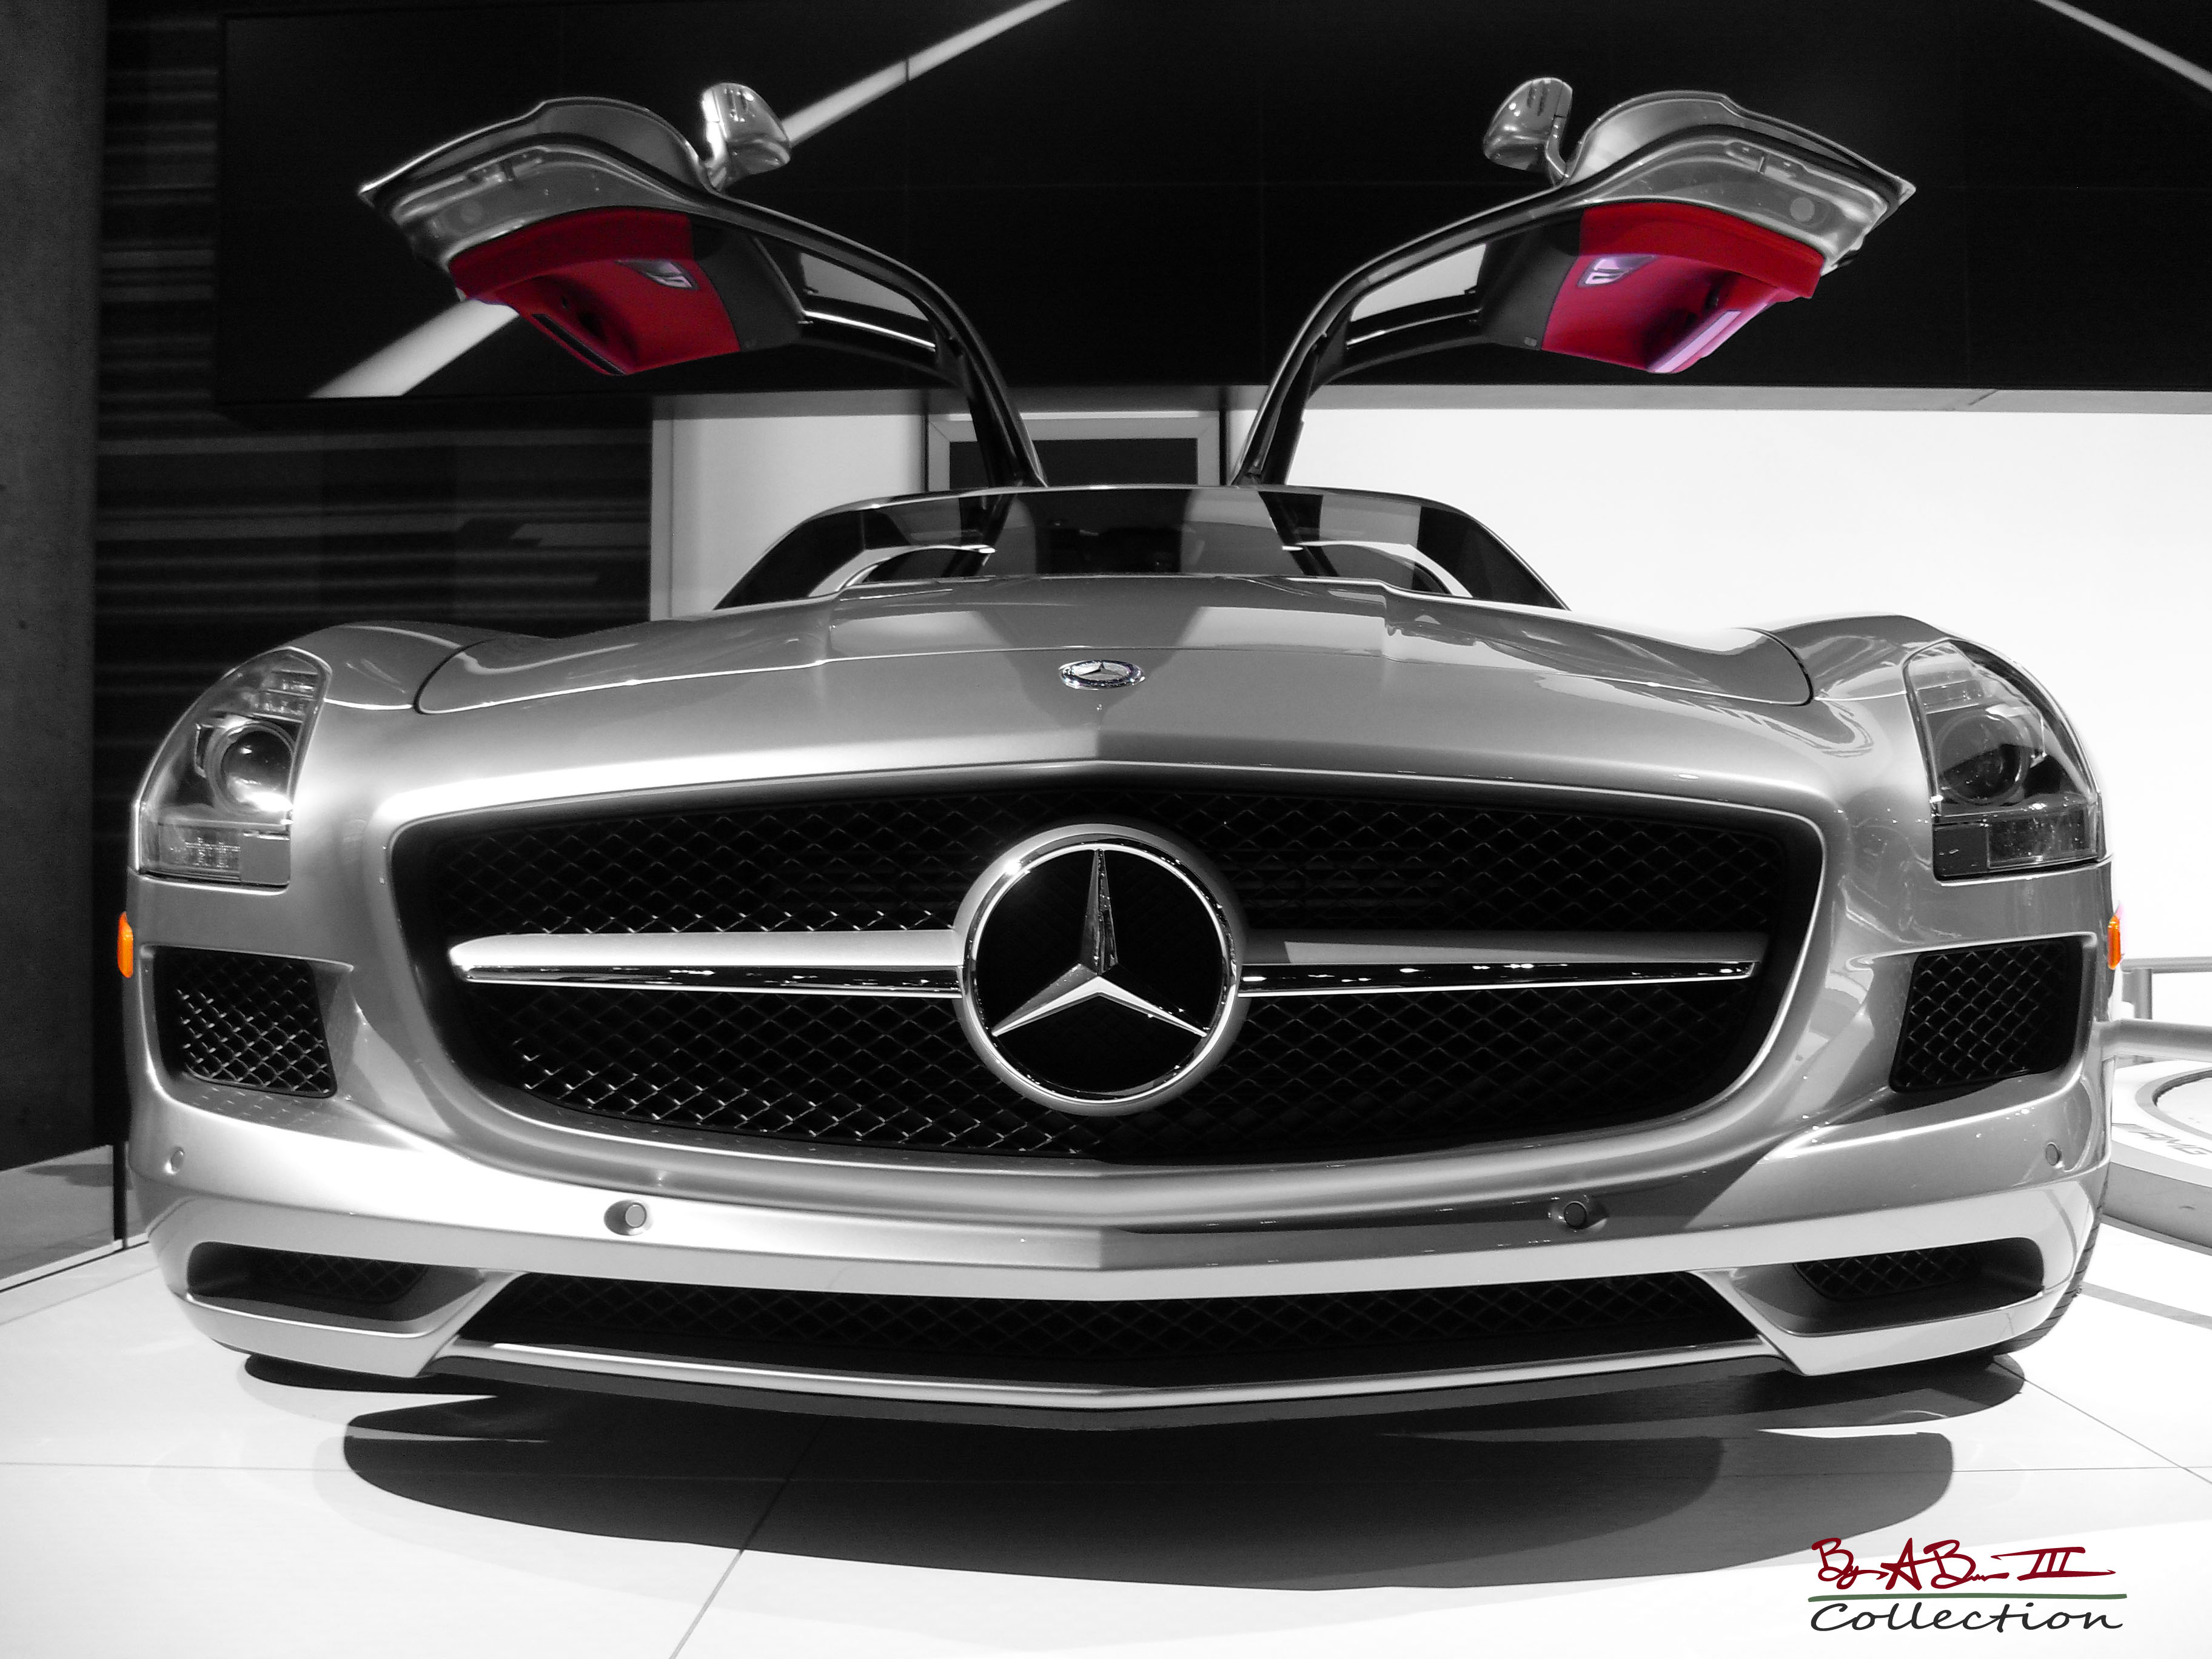 Mercedes benz sls amg gullwing 2010 price for Mercedes benz sl amg price